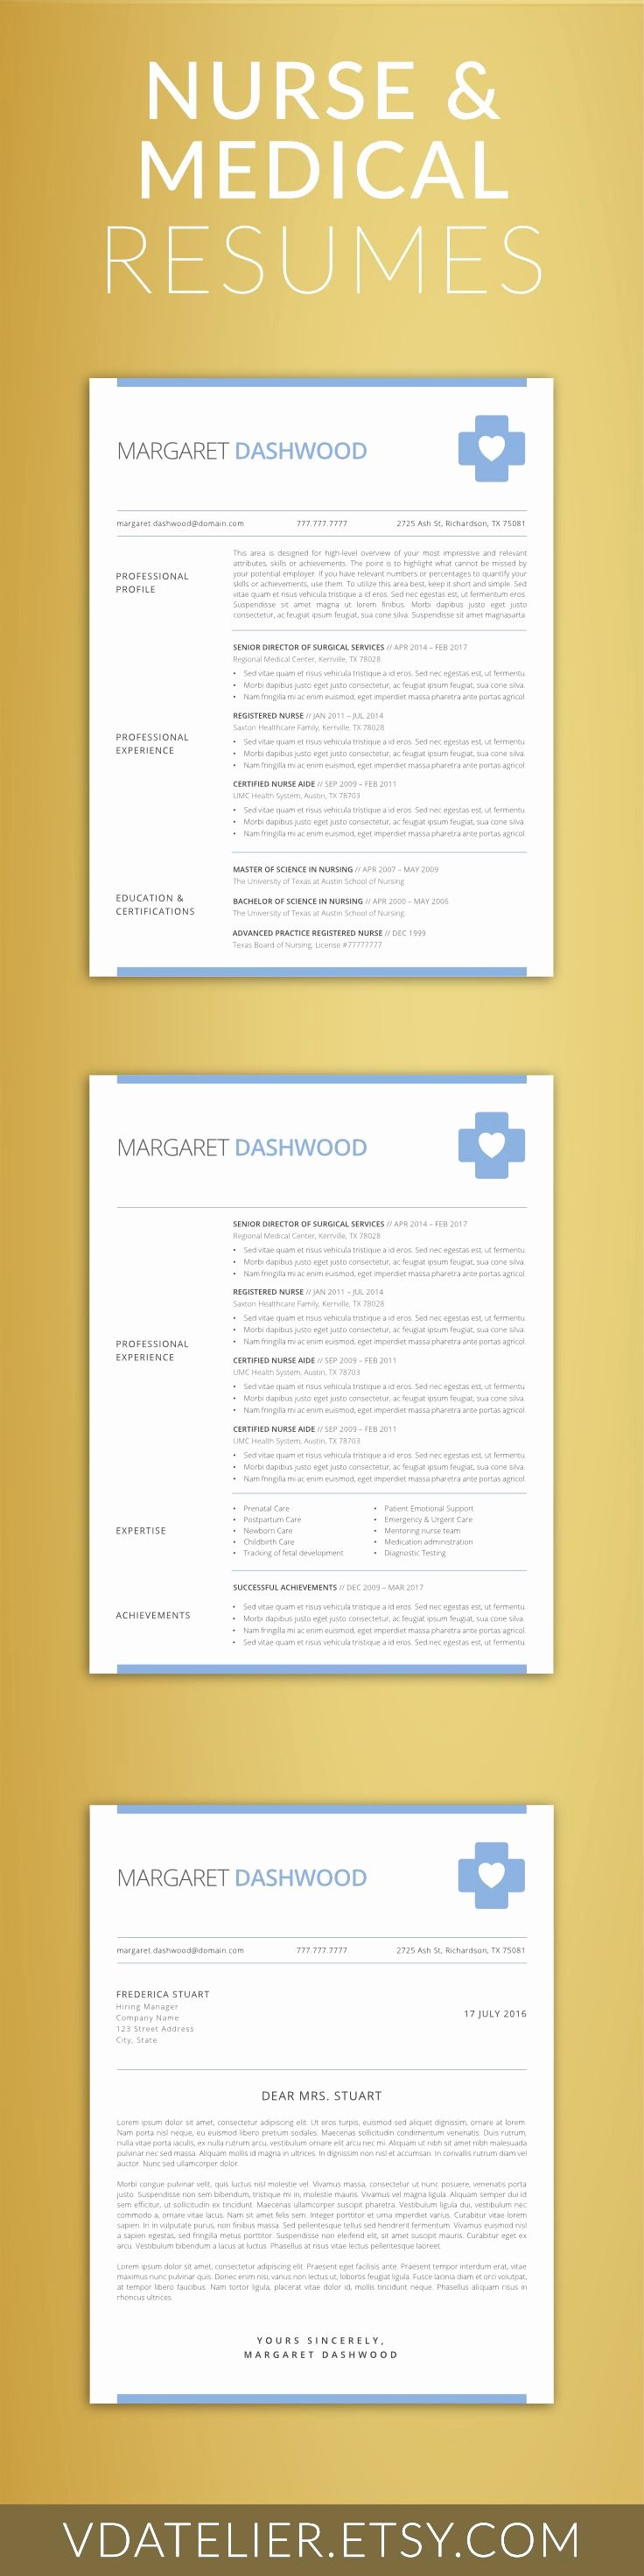 Nurse Resume Template Word Beautiful 25 Best Ideas About Nursing Resume On Pinterest